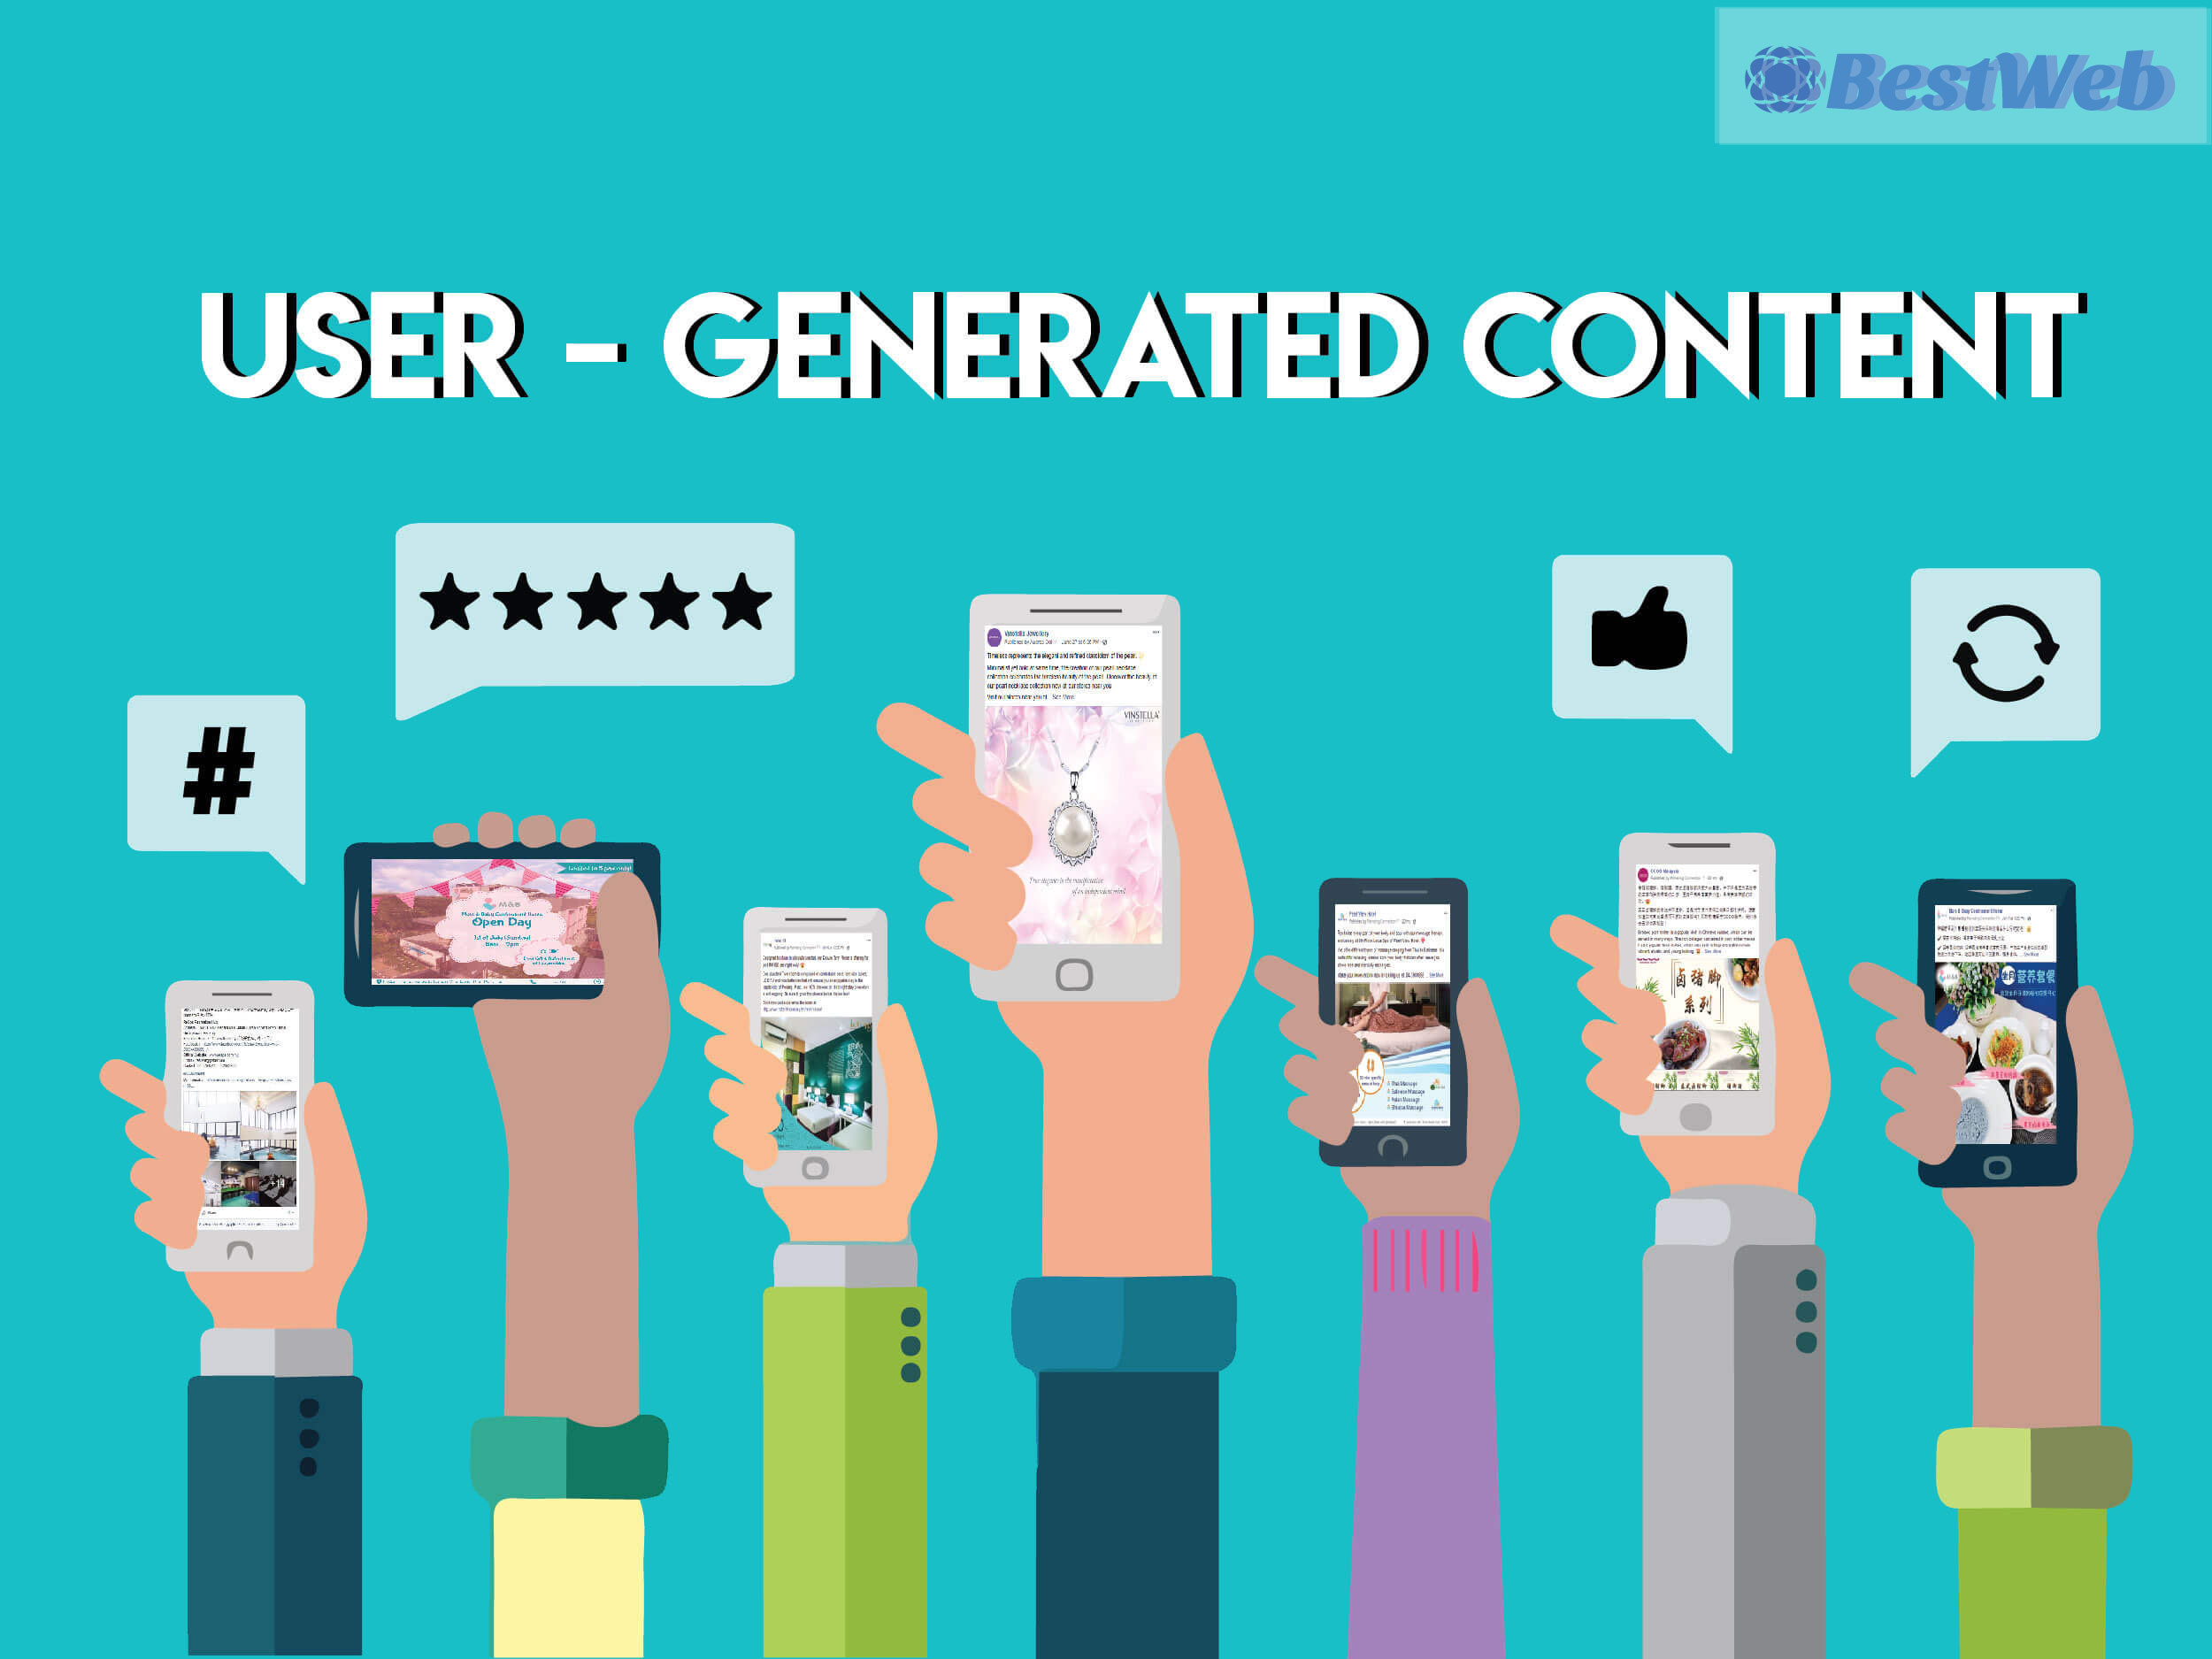 How to Encourage User-Generated Content on Social Media